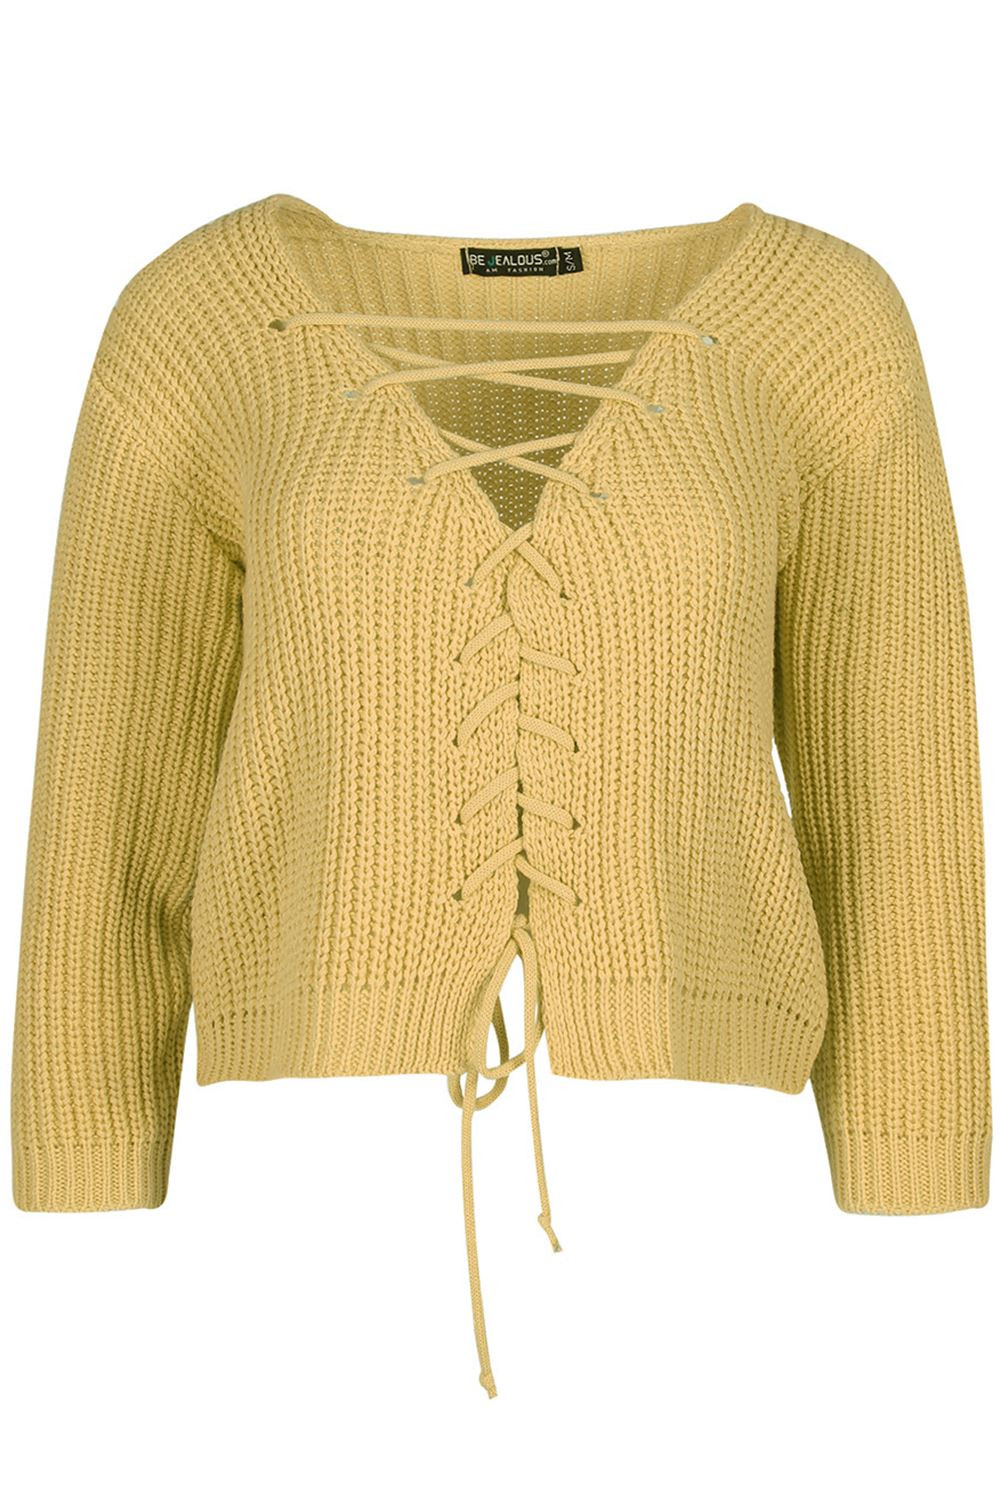 Best Of Womens Lace Up Plunge V Neck Chunky Cable Knit Jumper Ladies Cable Knit Sweater Of Charming 49 Photos Ladies Cable Knit Sweater